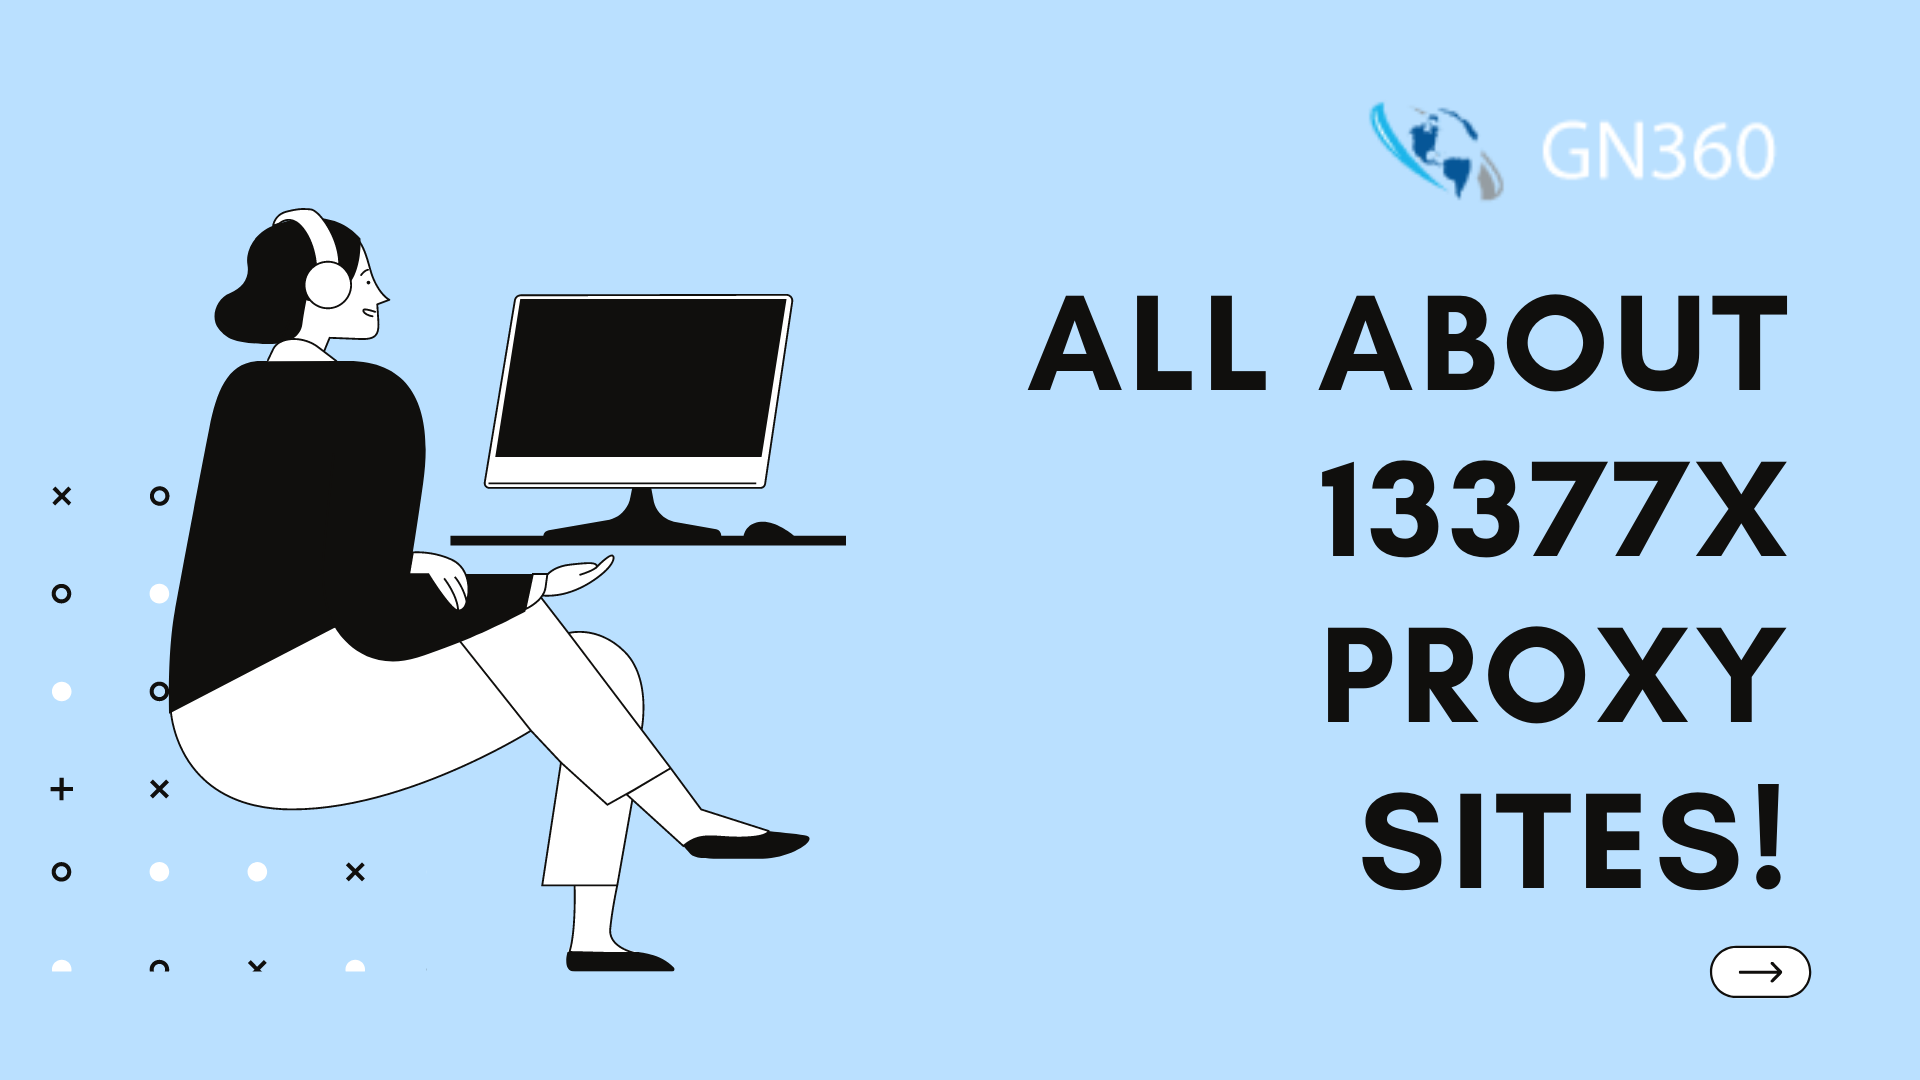 Best 1337x Proxy and all about 13377x Proxy Sites